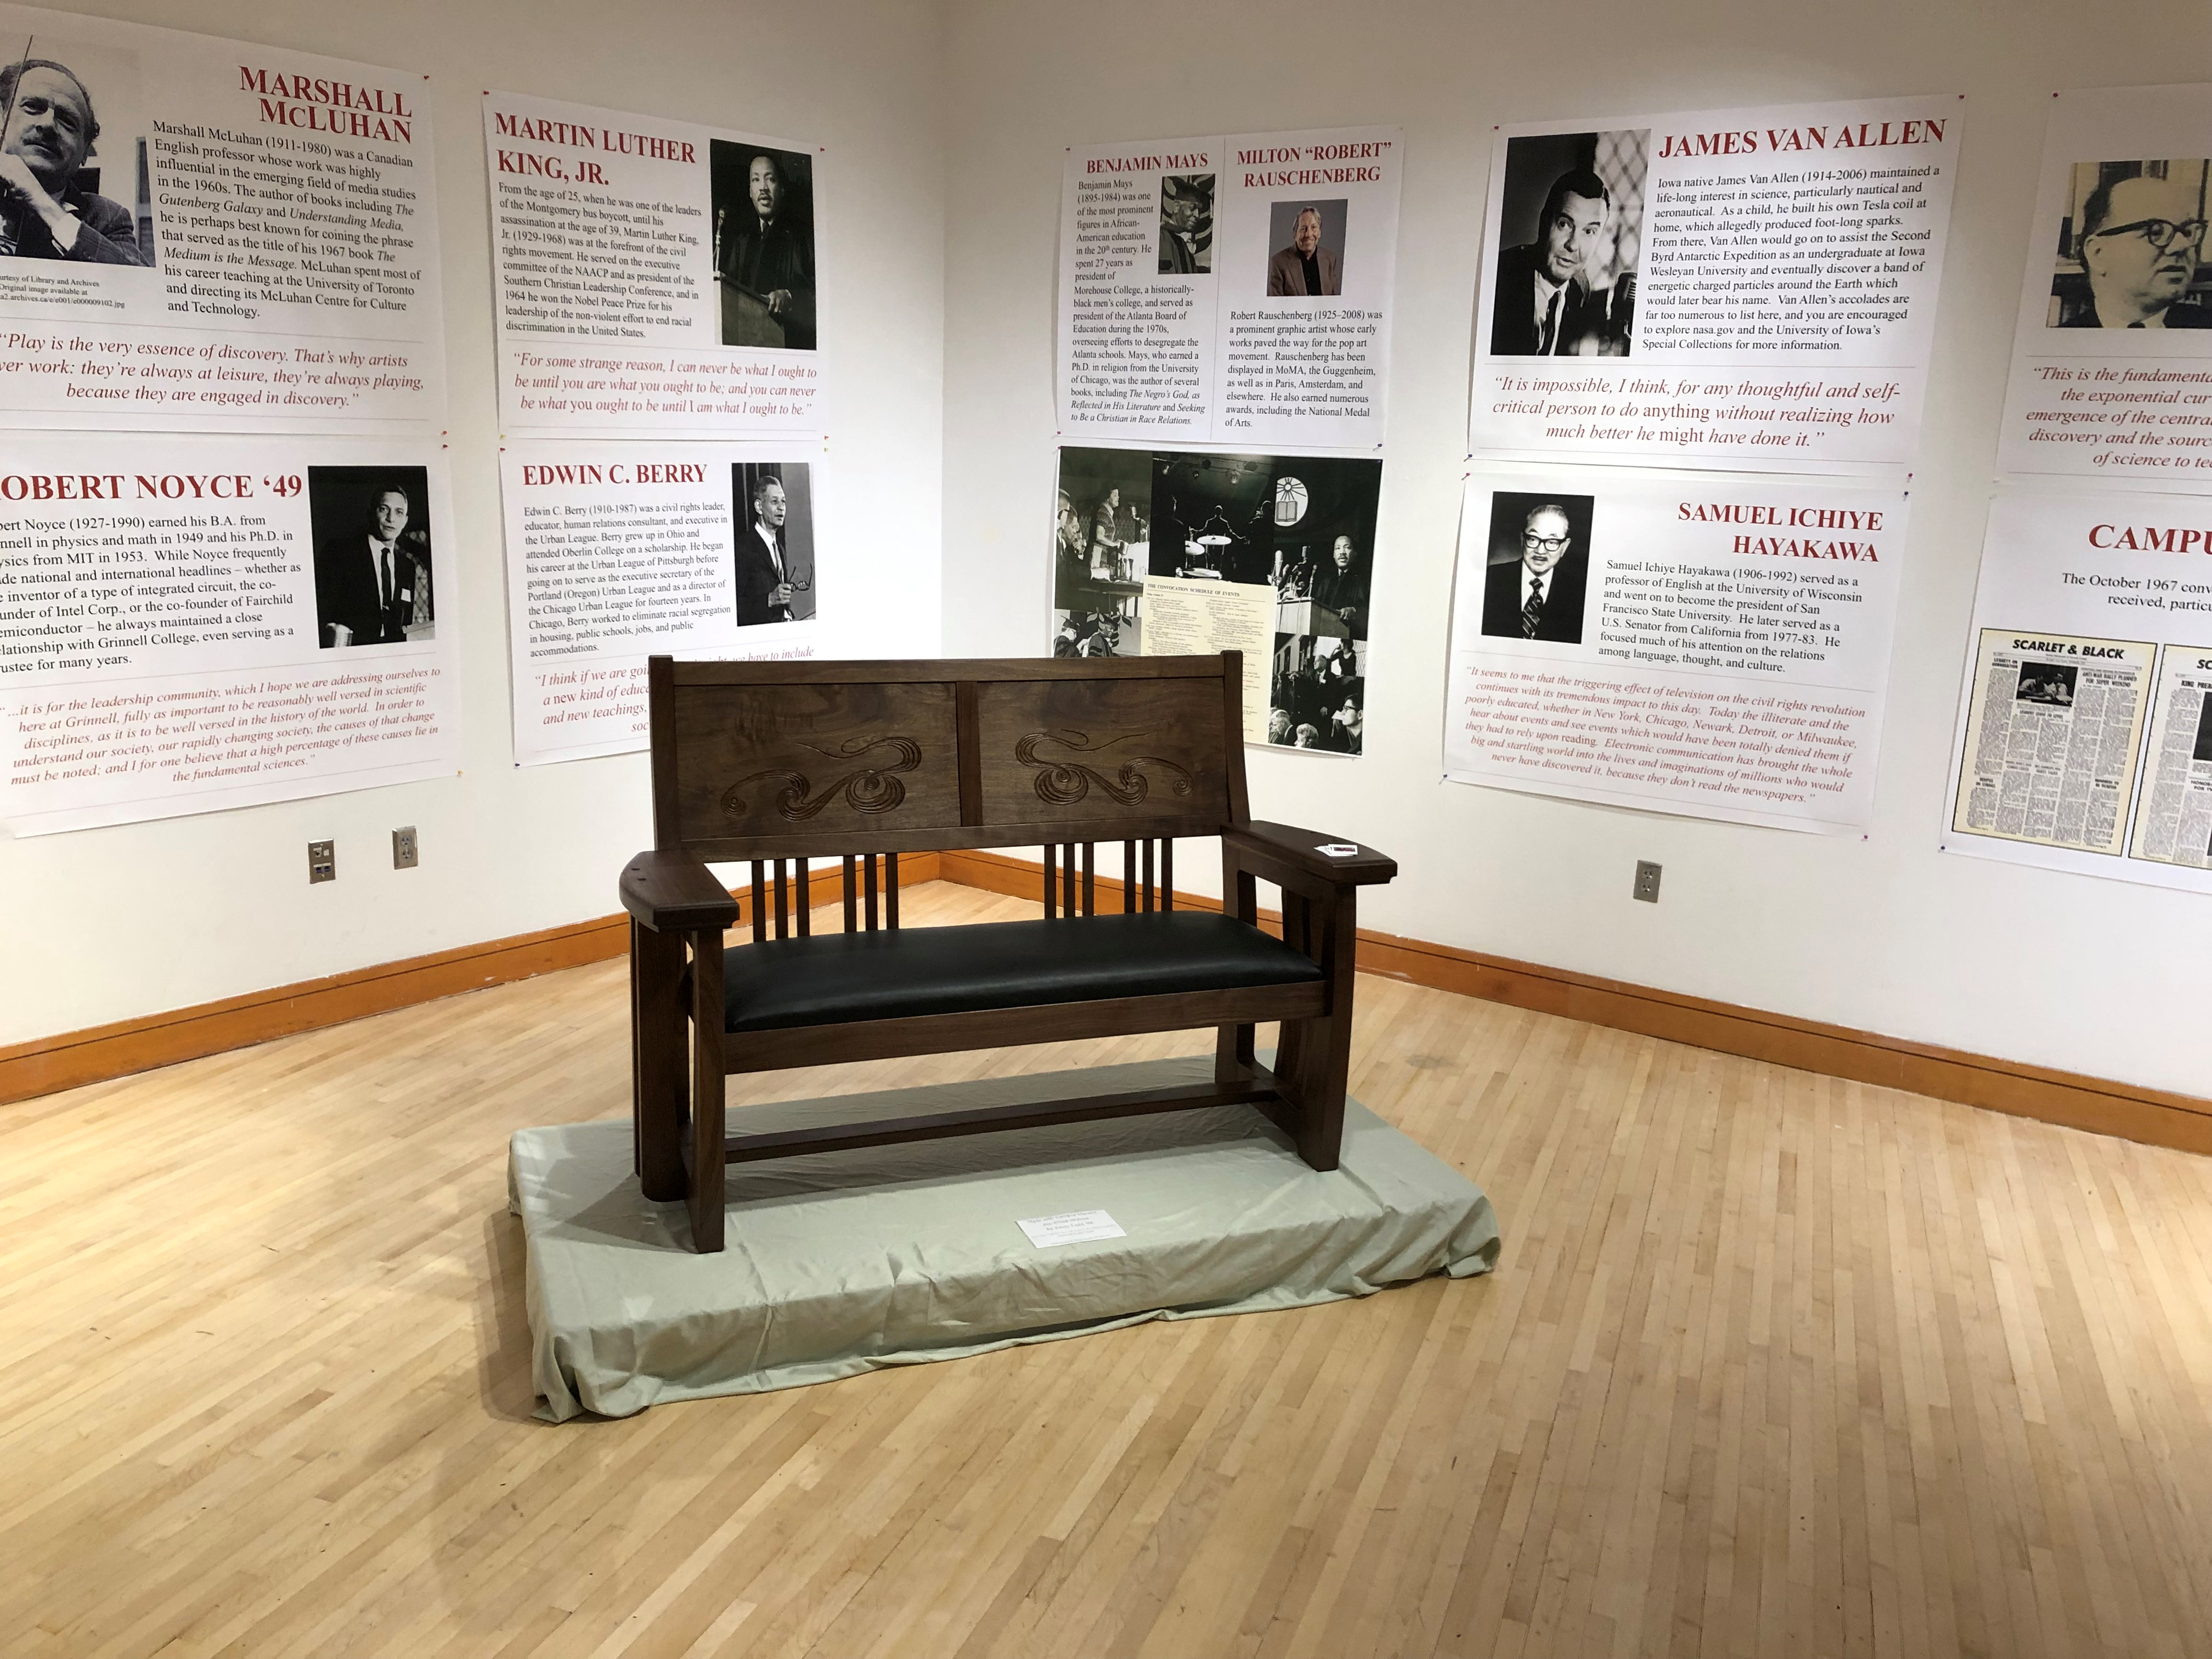 Small walnut bench displayed during 2019 alumni weekend at Grinnell College.